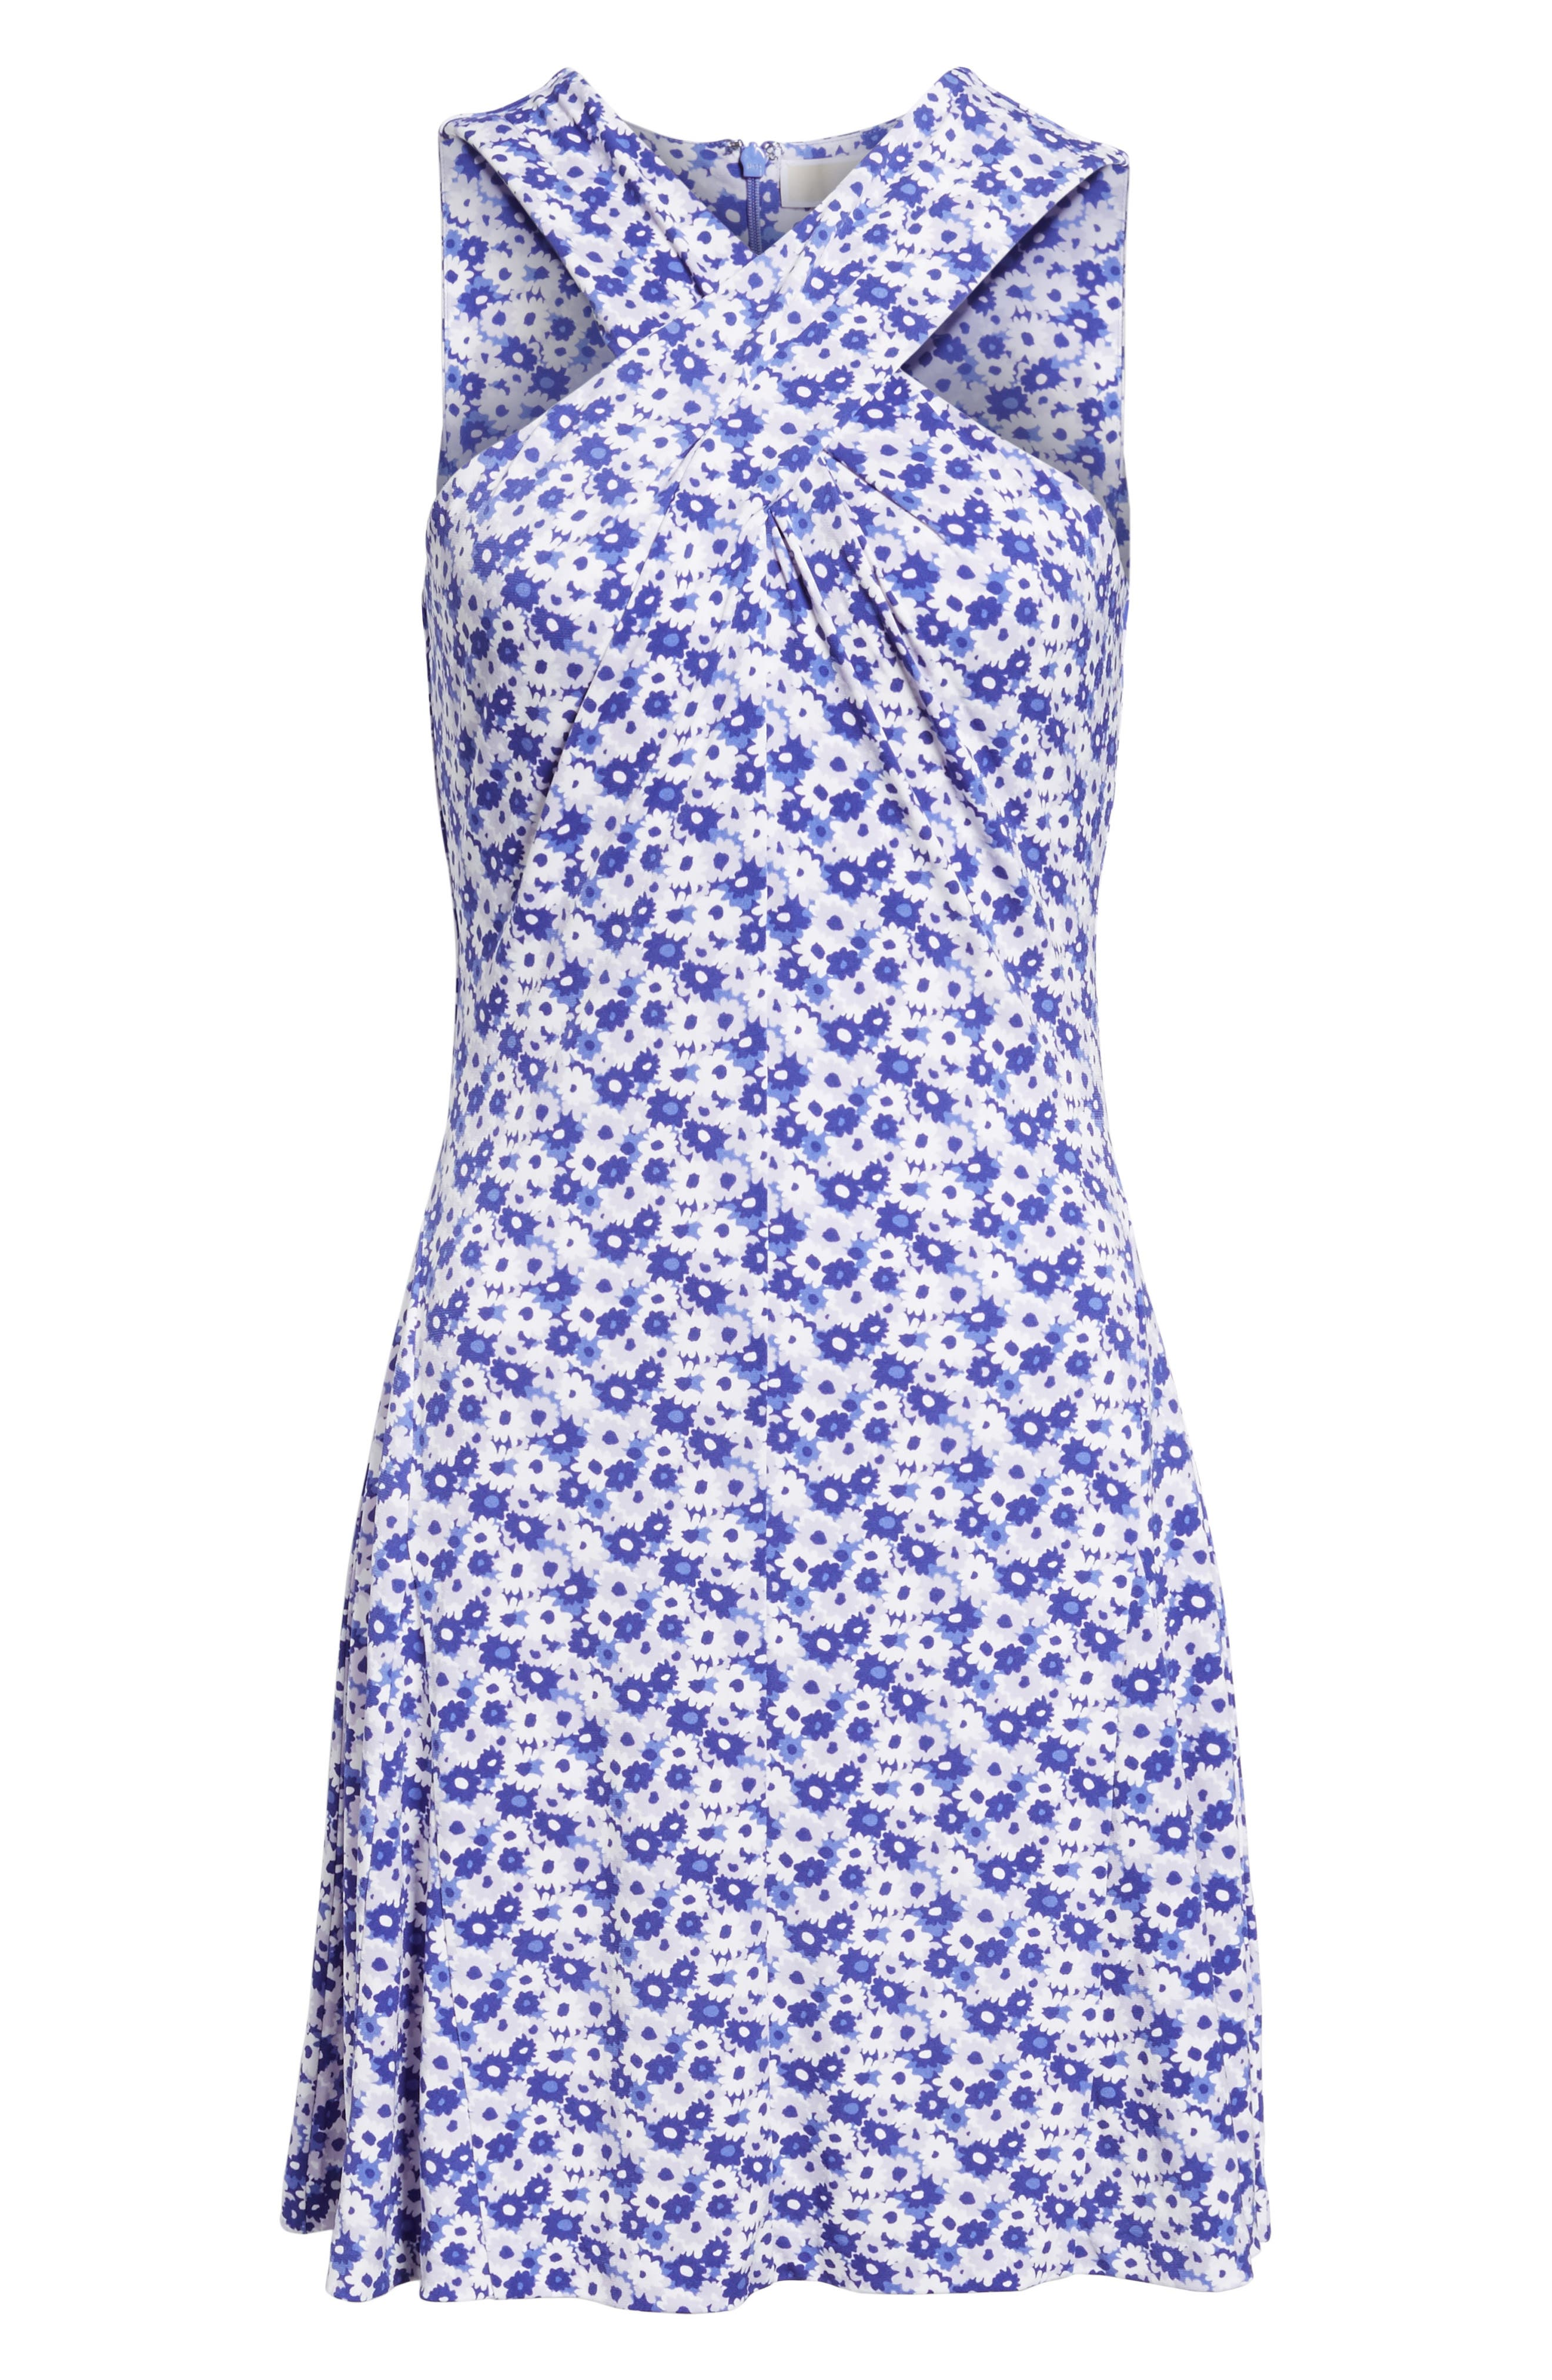 Carnations Cross Neck Fit and Flare Dress,                             Alternate thumbnail 12, color,